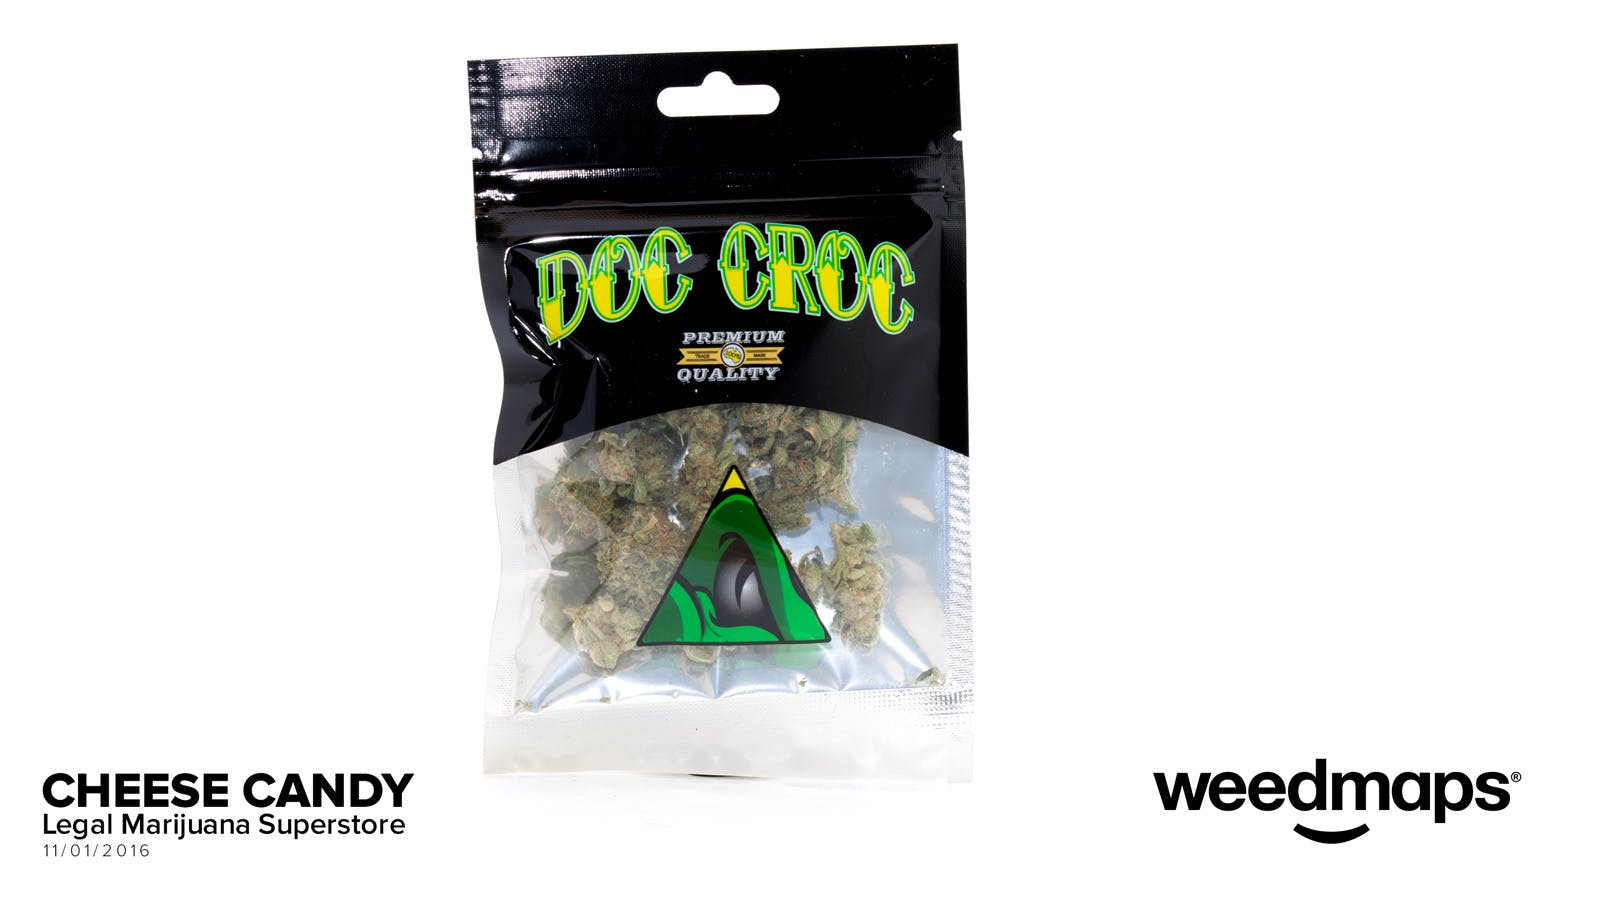 marijuana-dispensaries-legal-marijuana-superstore-in-port-orchard-cheese-candy